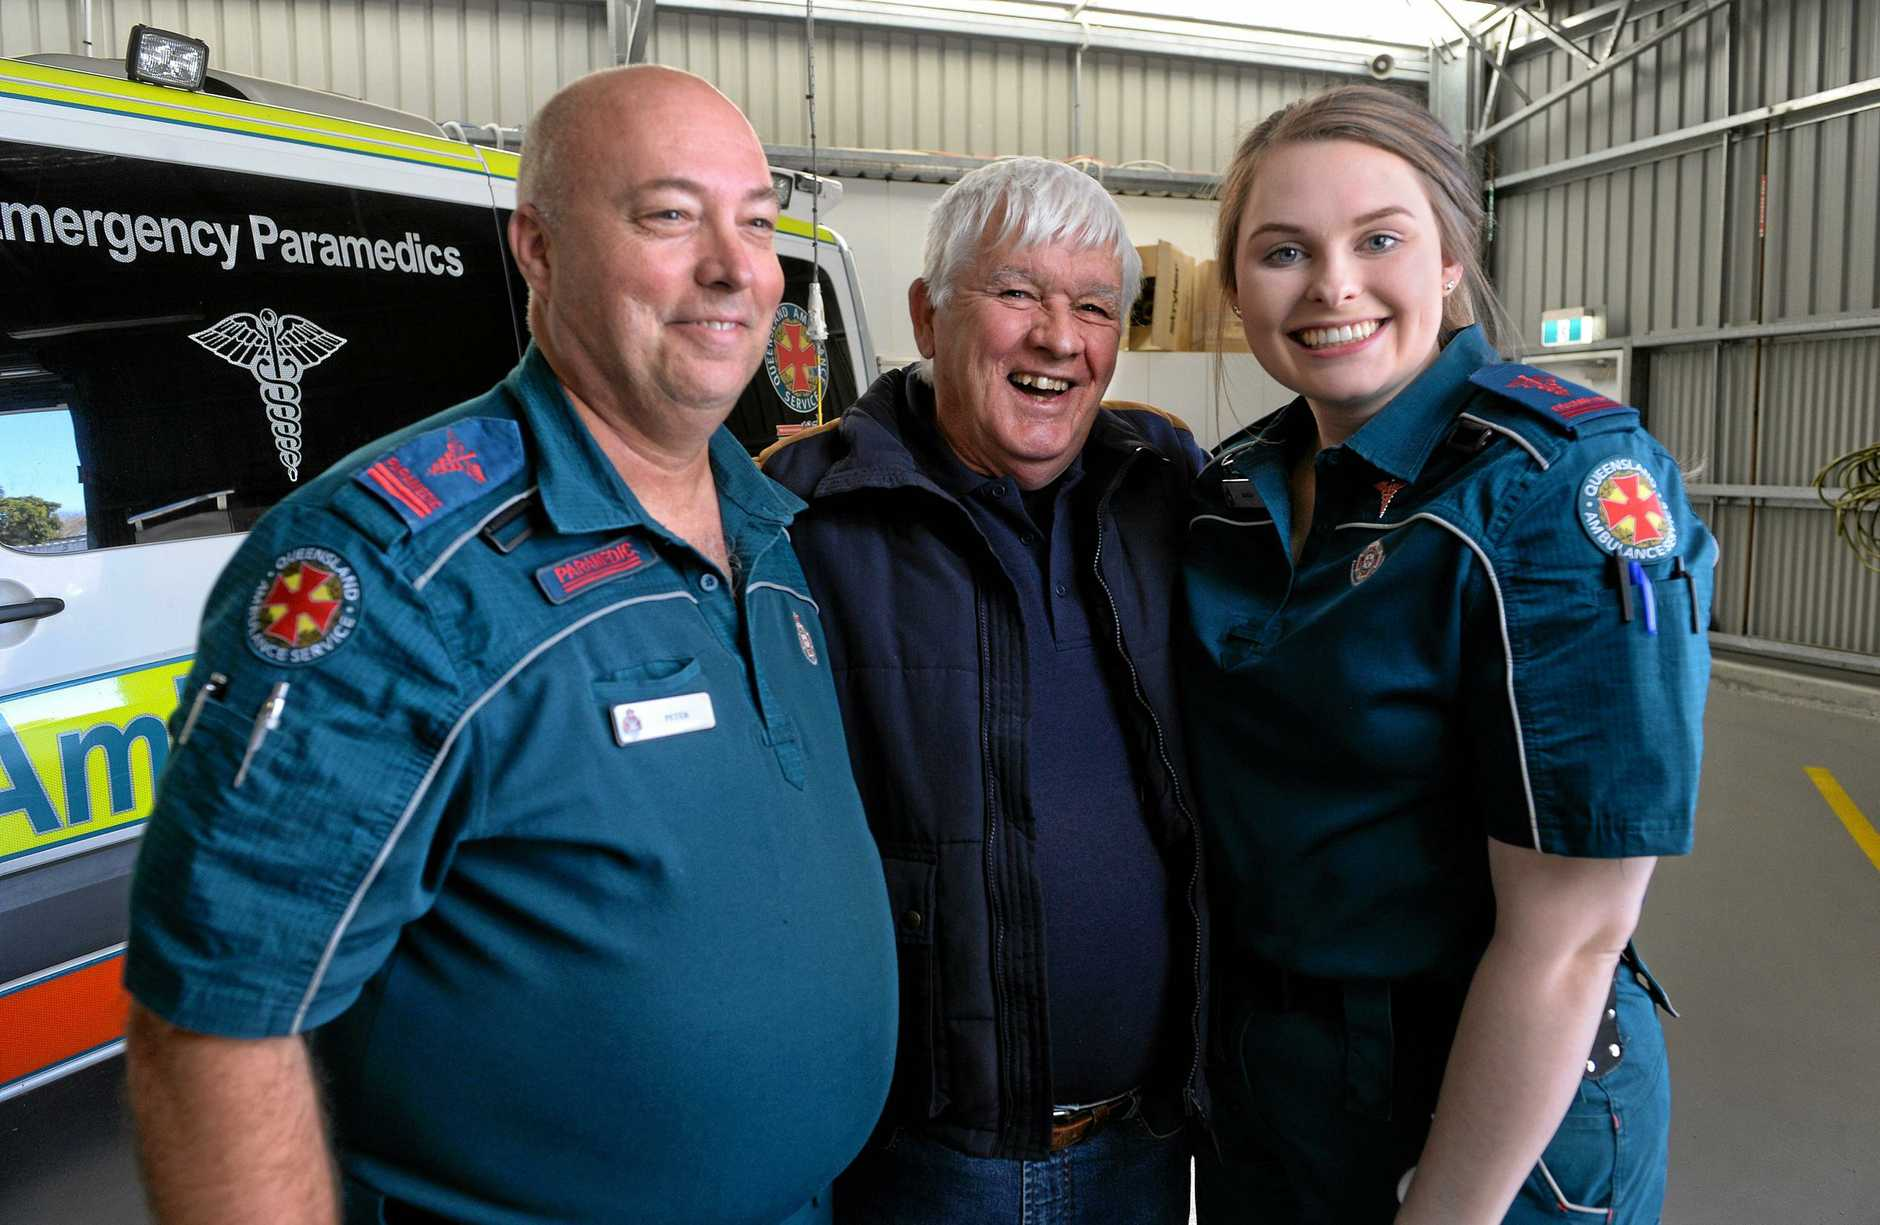 THANKS: Dan Fowler (middle) is greeted by Lowood paramedics Peter Brown and Kayla Yarrow, who treated him following after a plane crash.